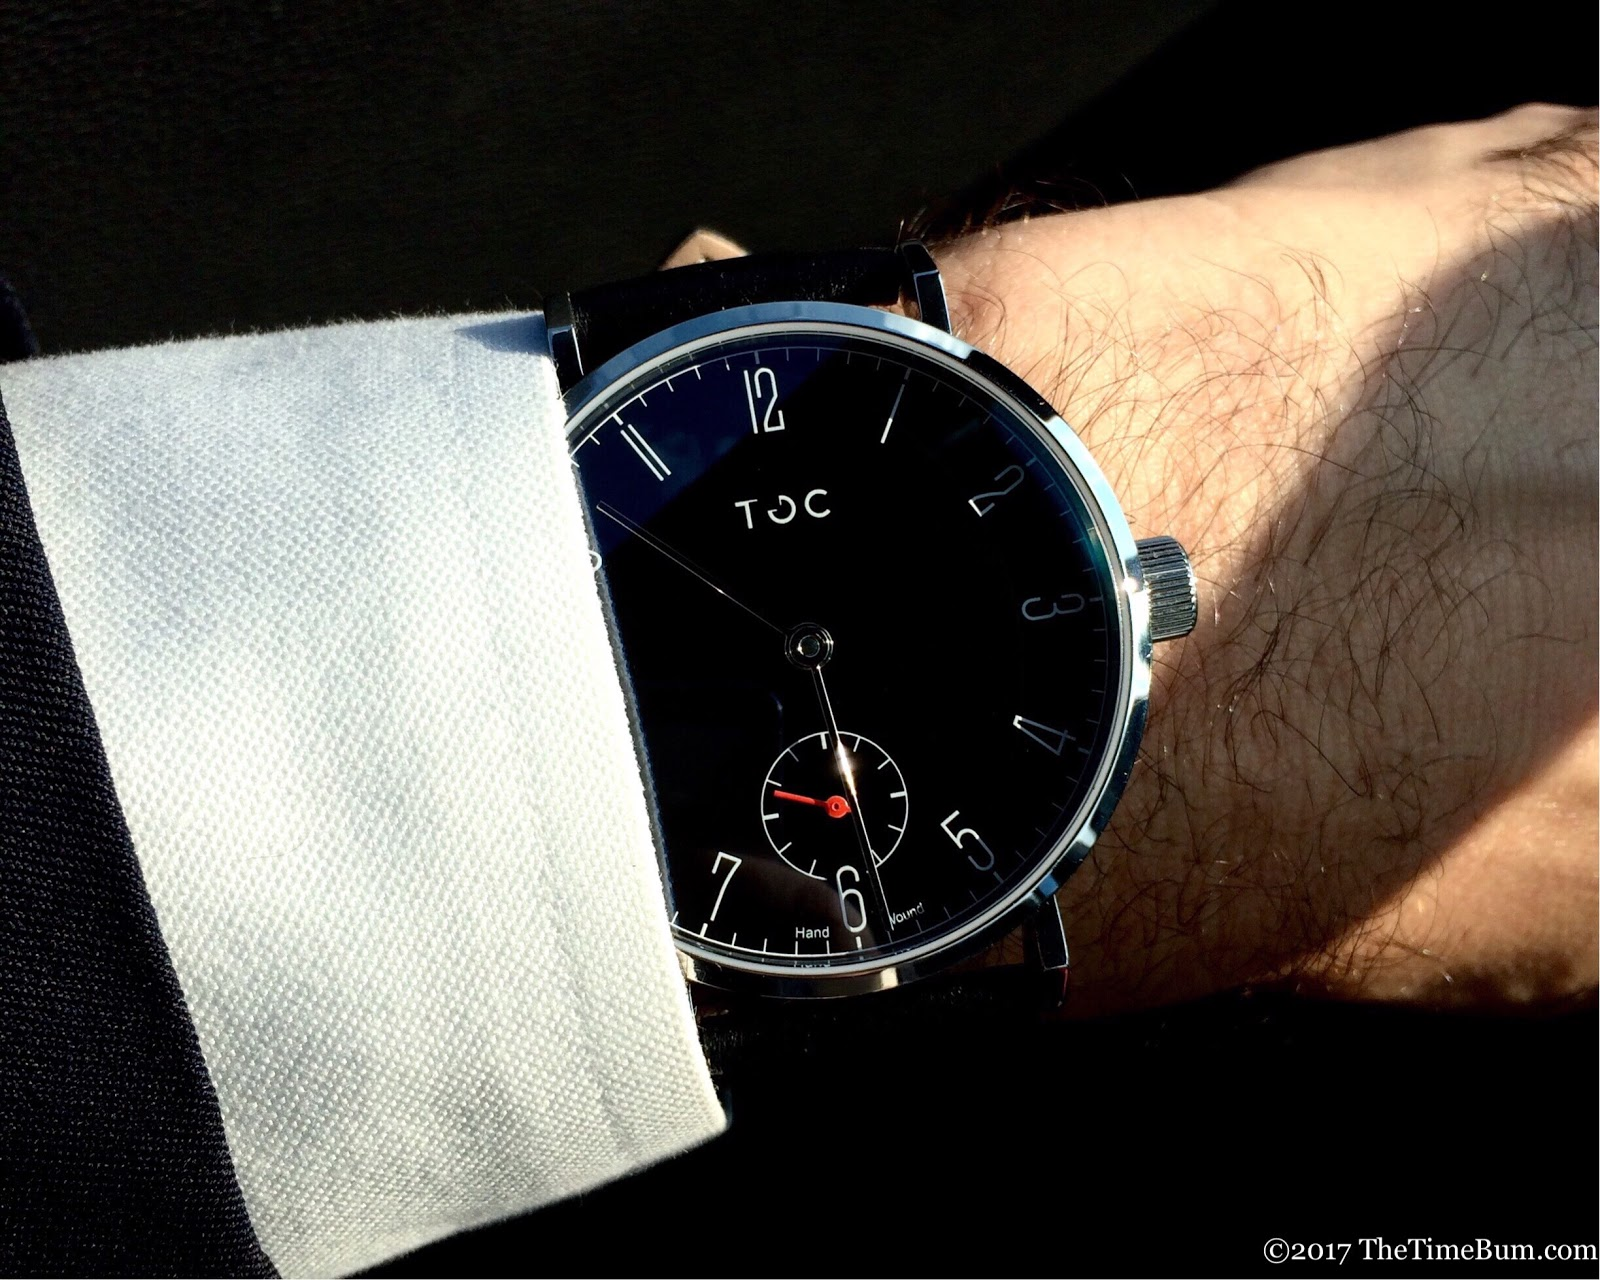 Toc19 Carbon Black wrist